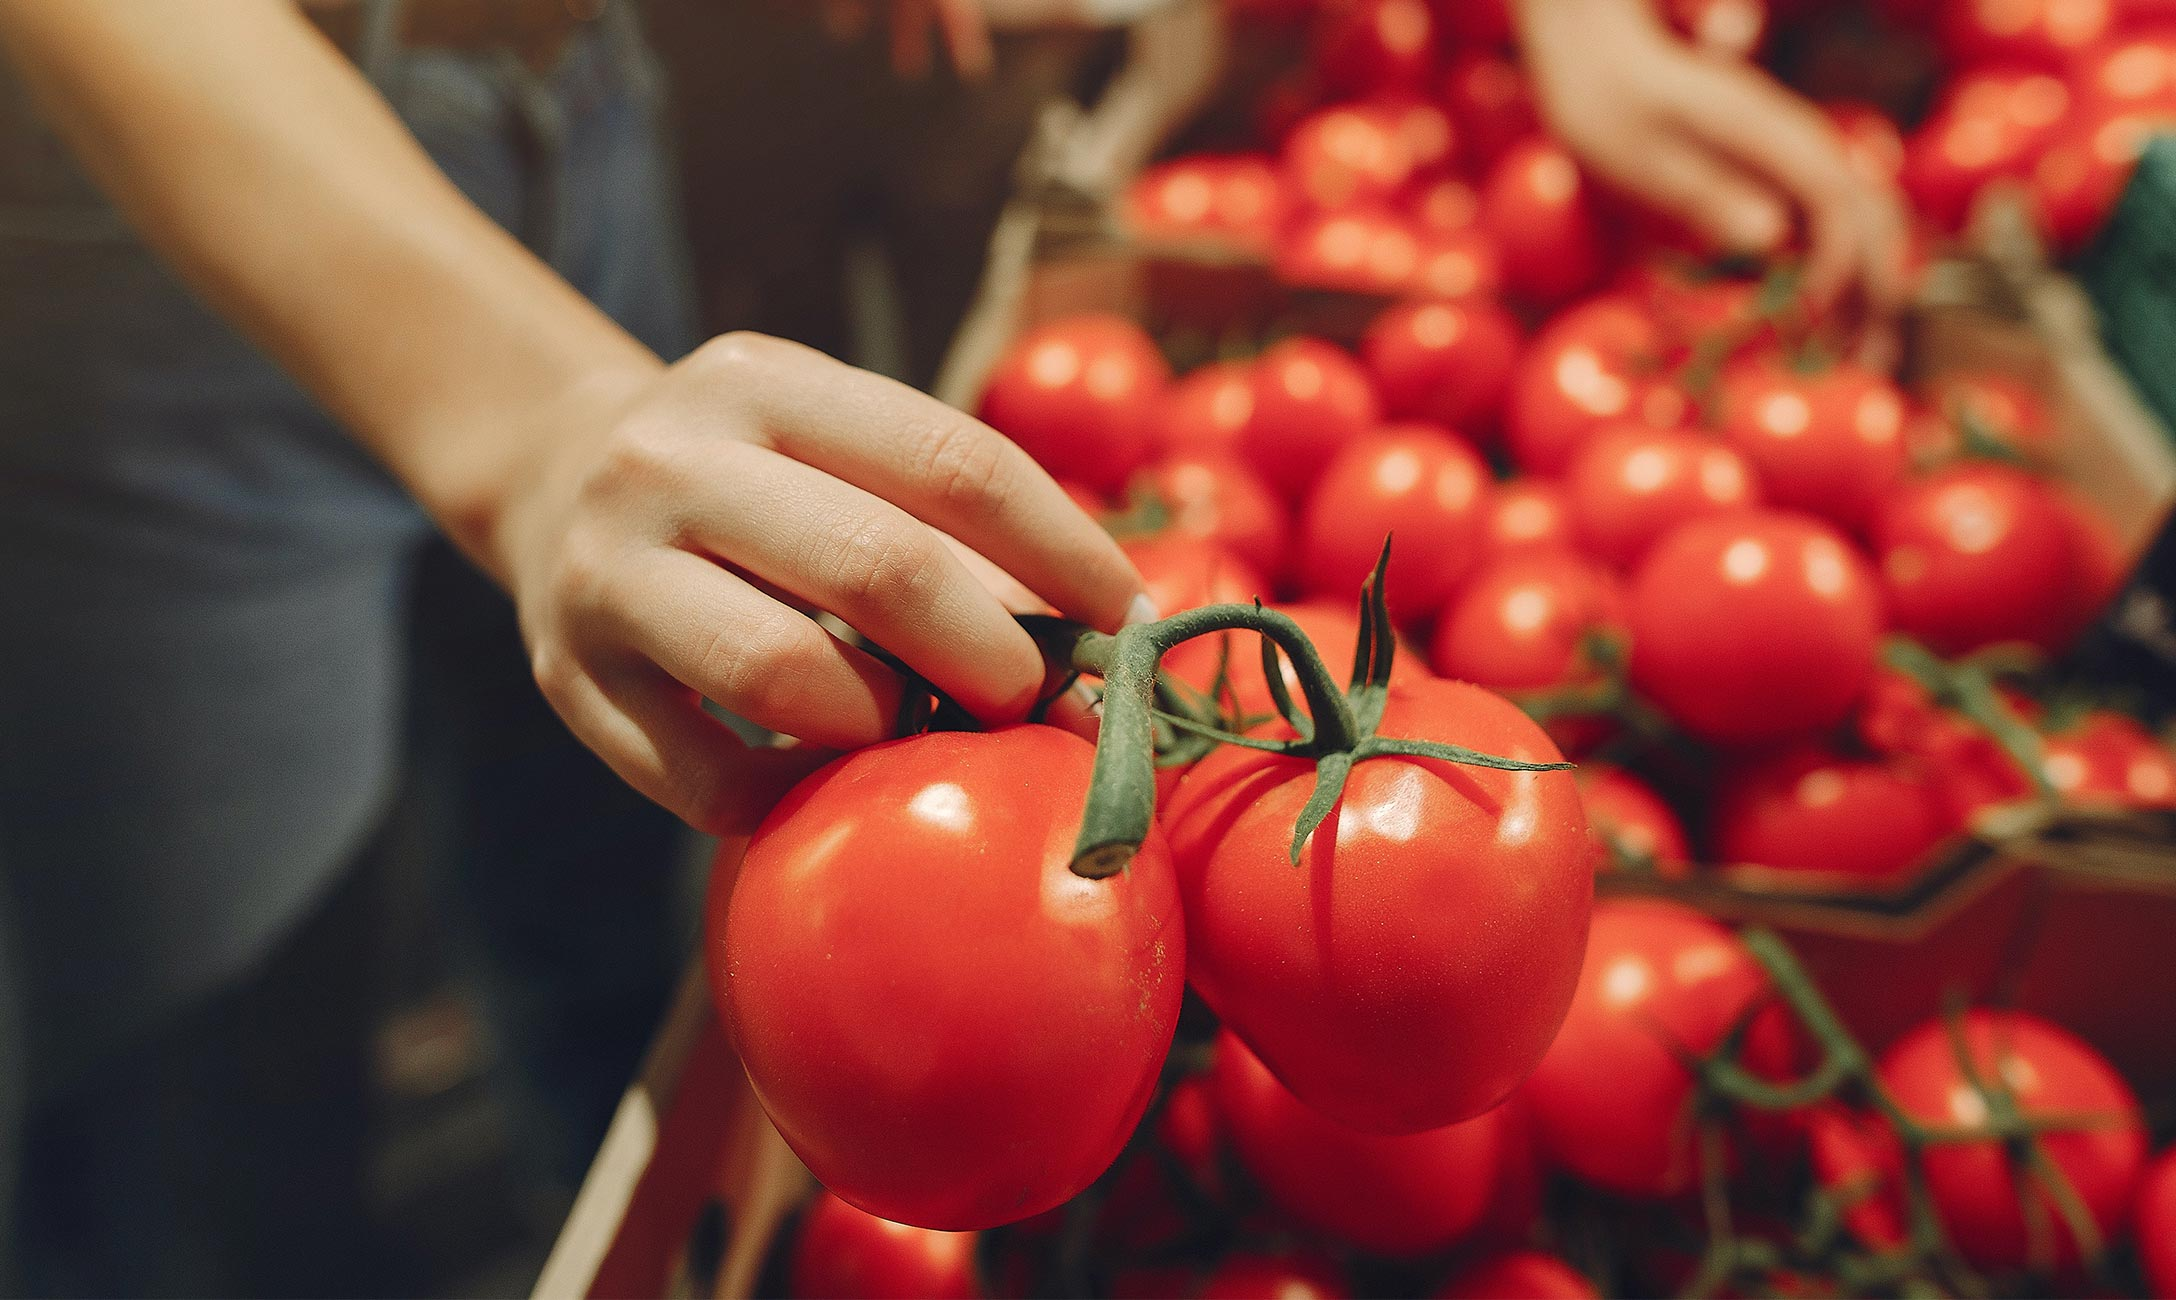 Hand grabbing tomatoes in a market.